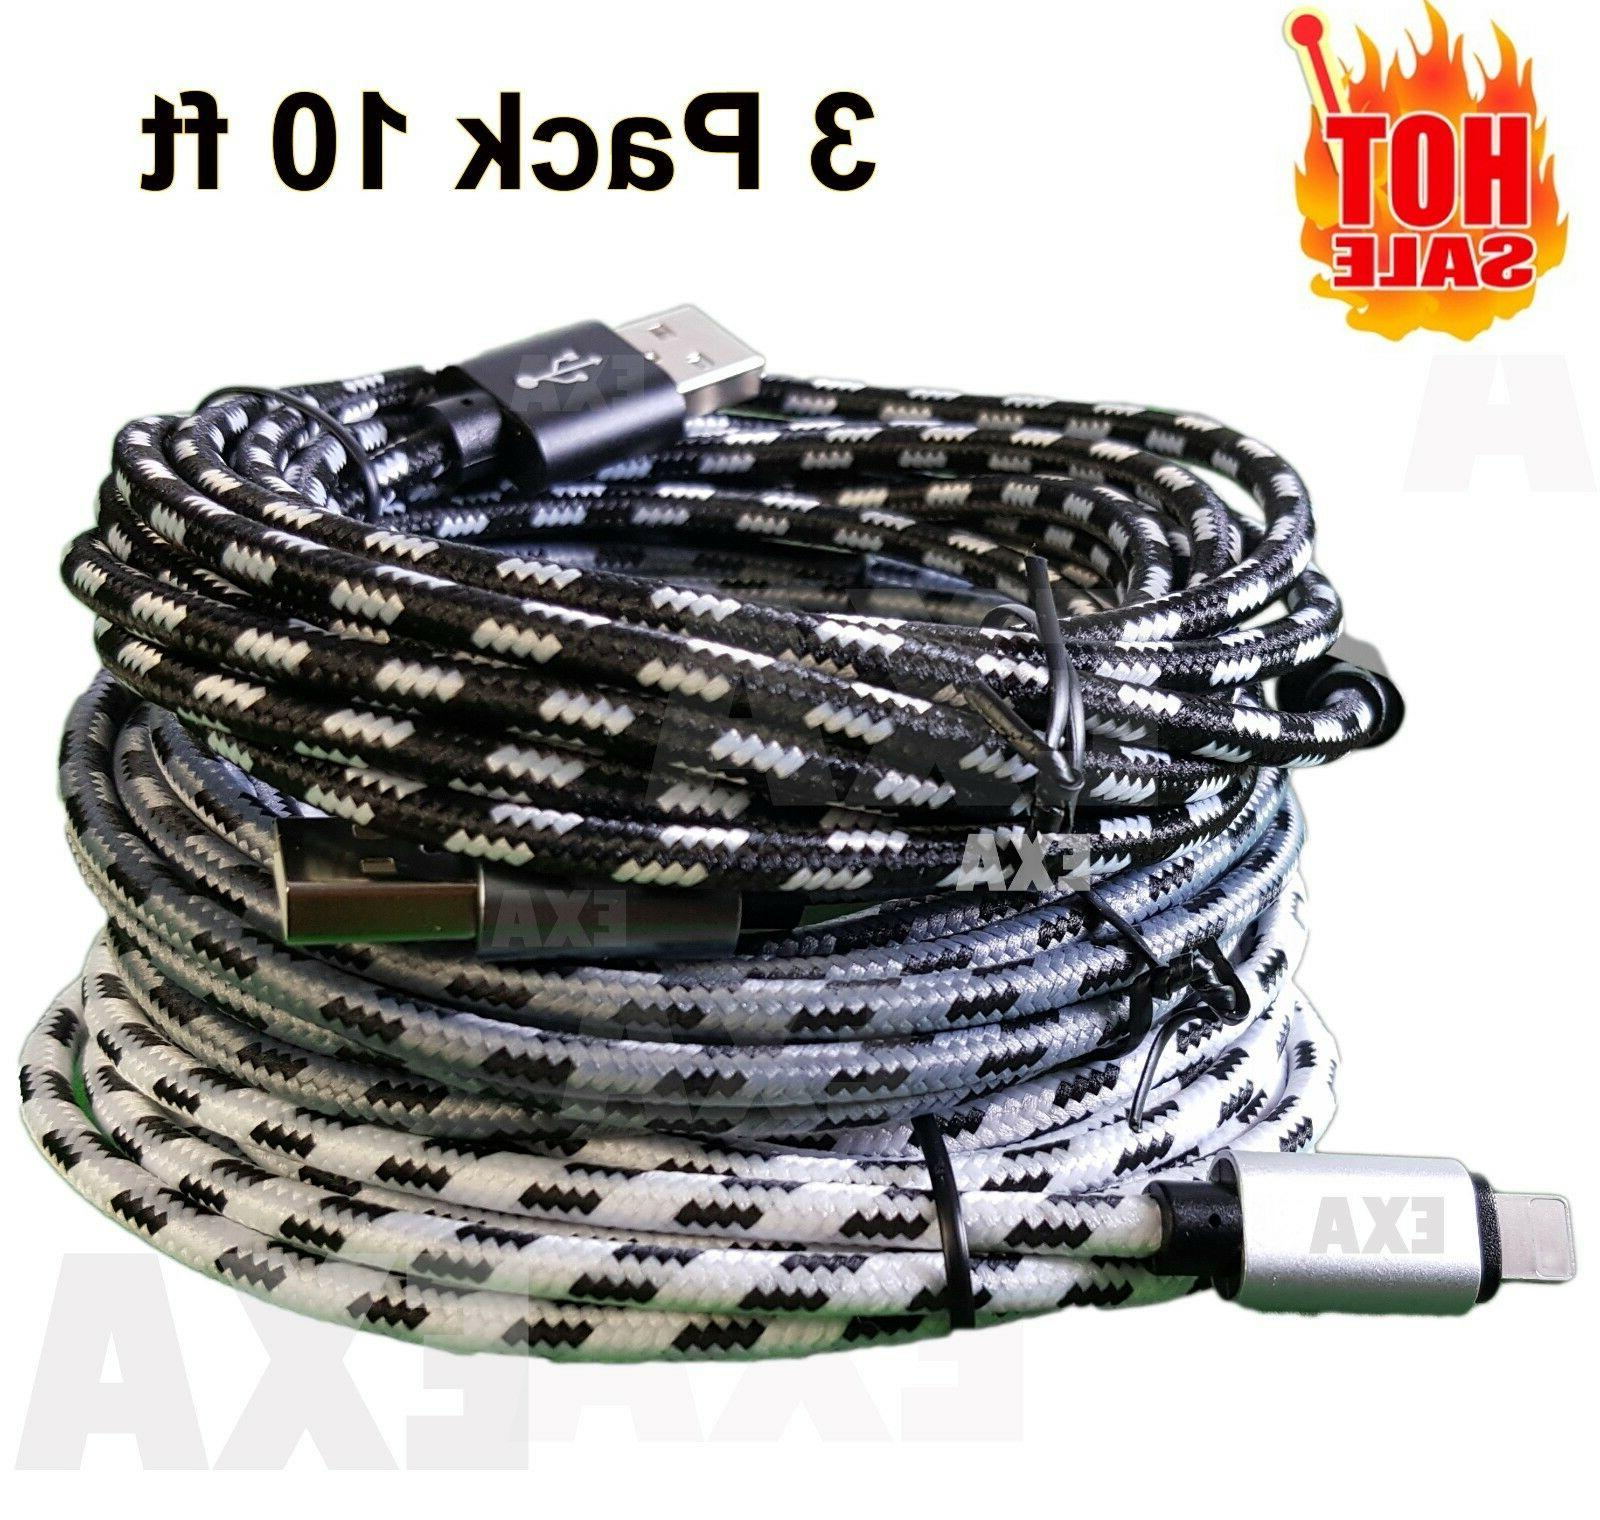 3 pack 10 ft long cable heavy